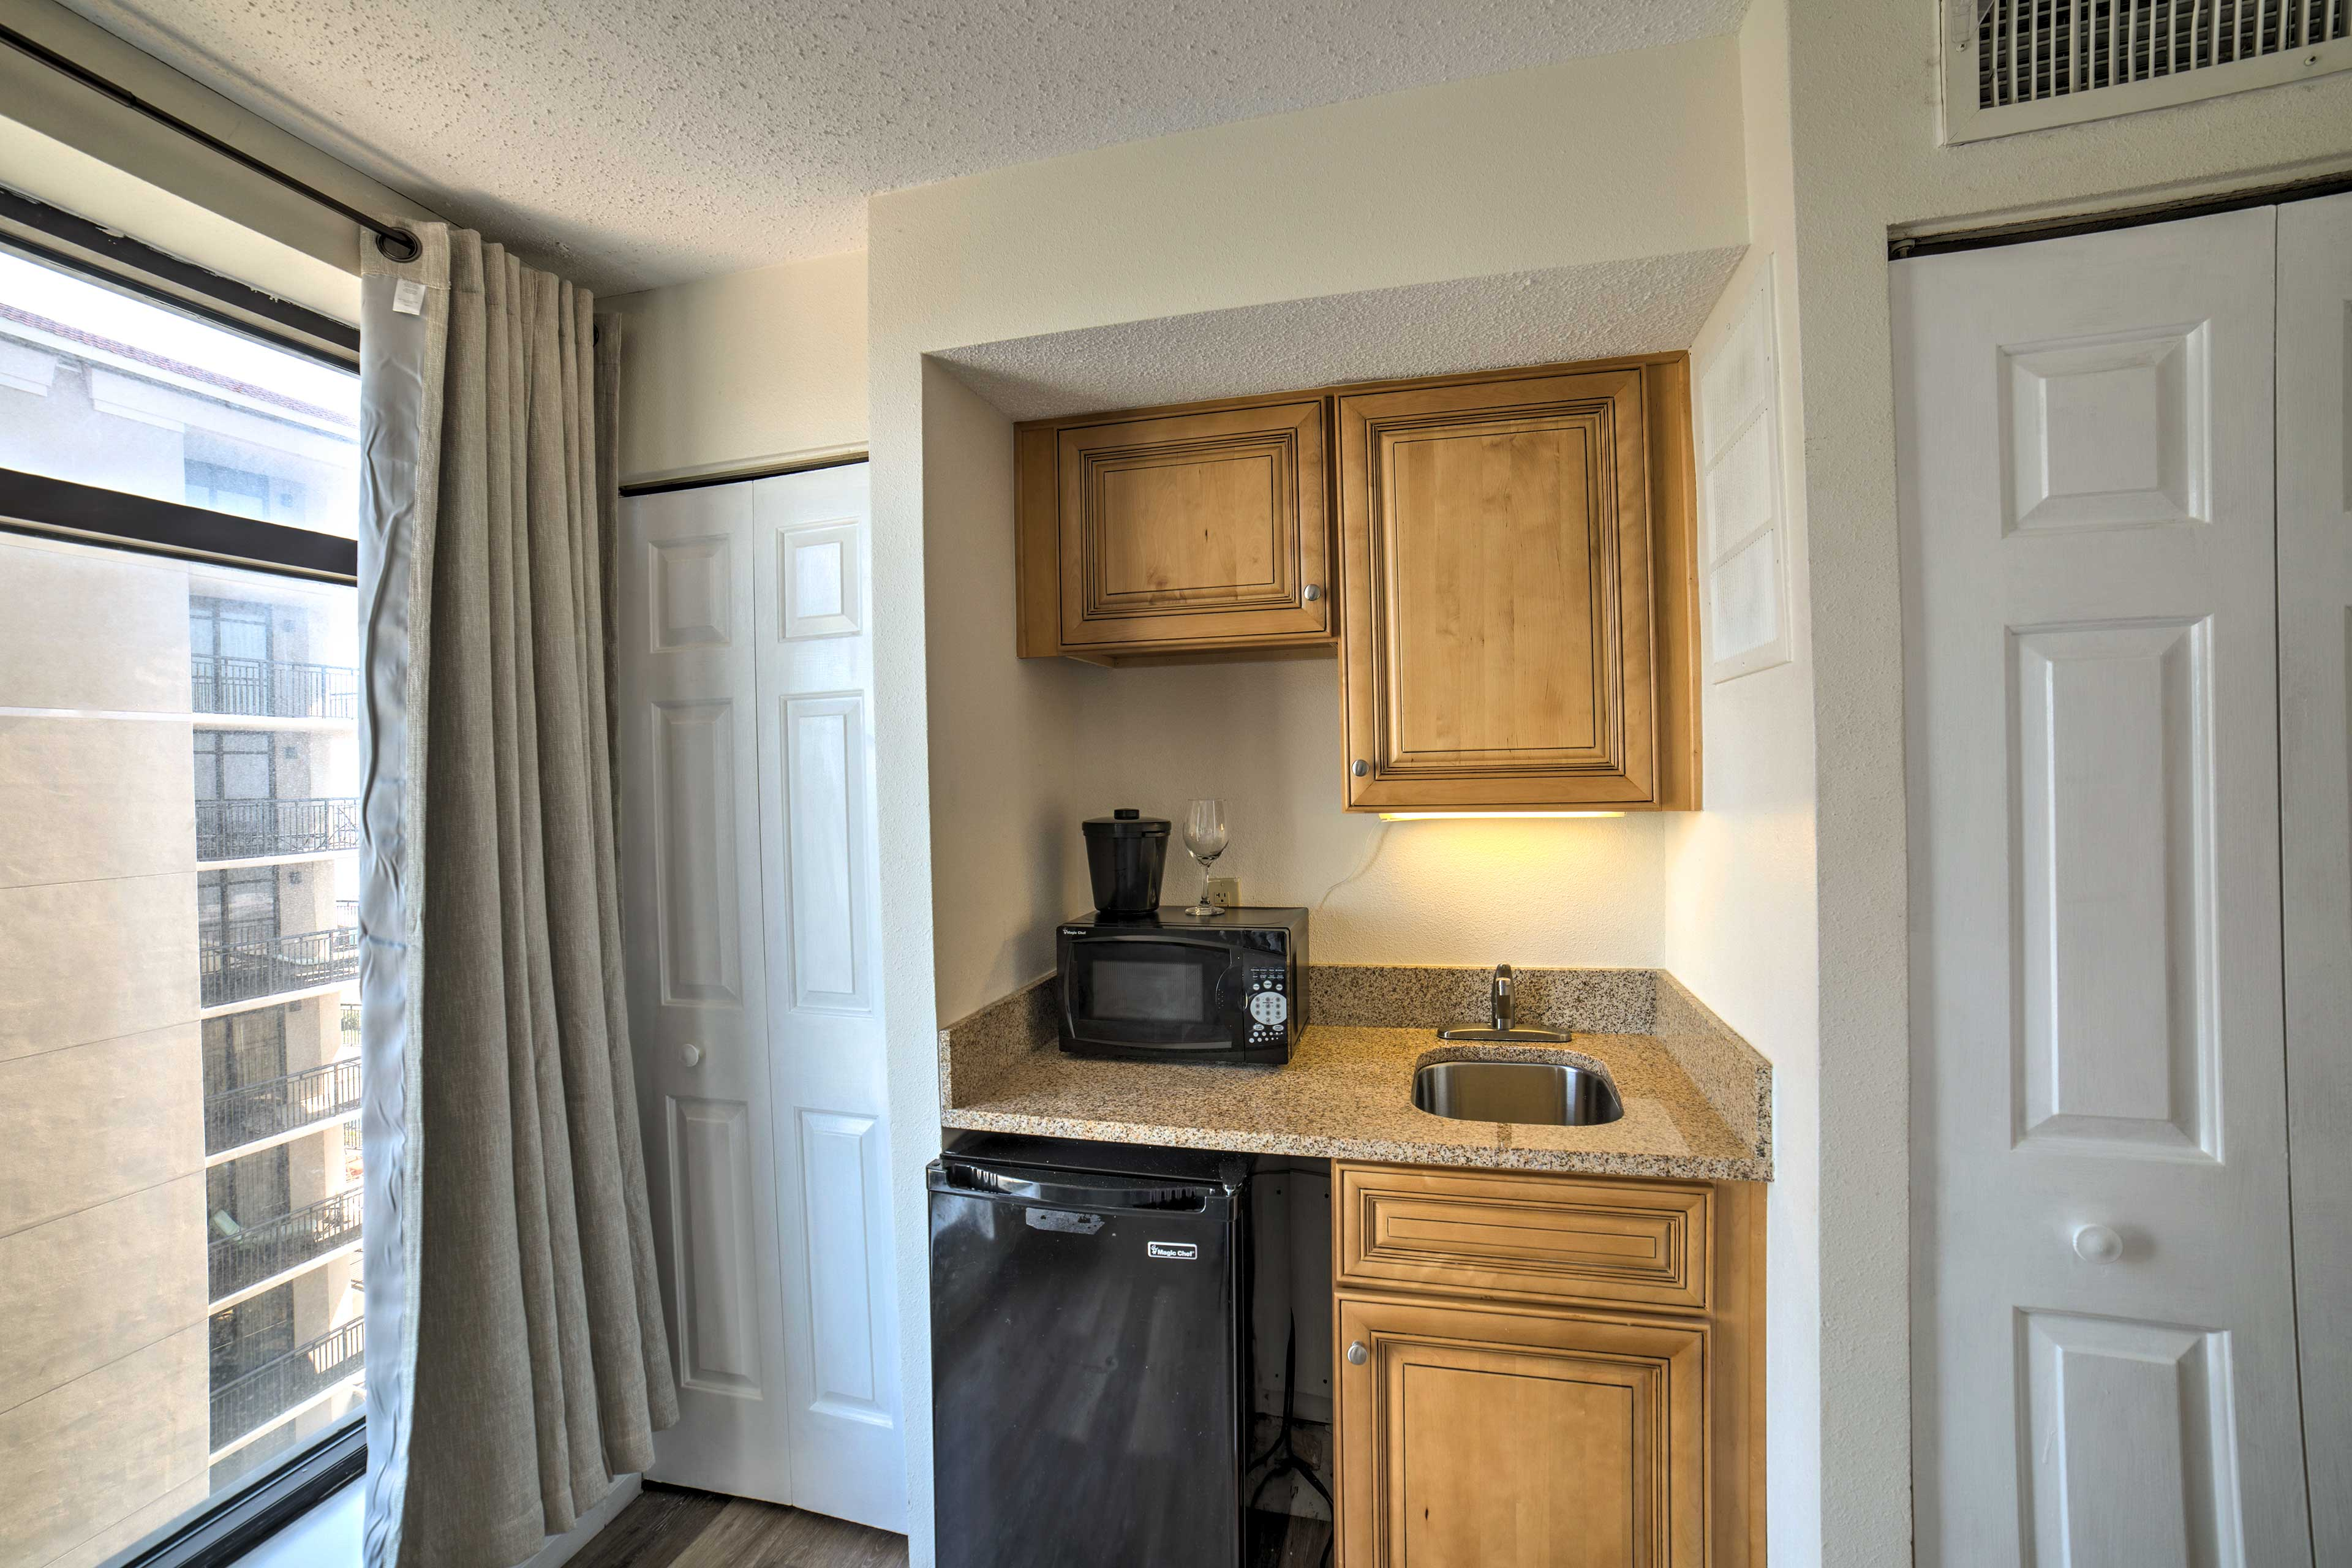 Custom wood cabinets complete the kitchenette.